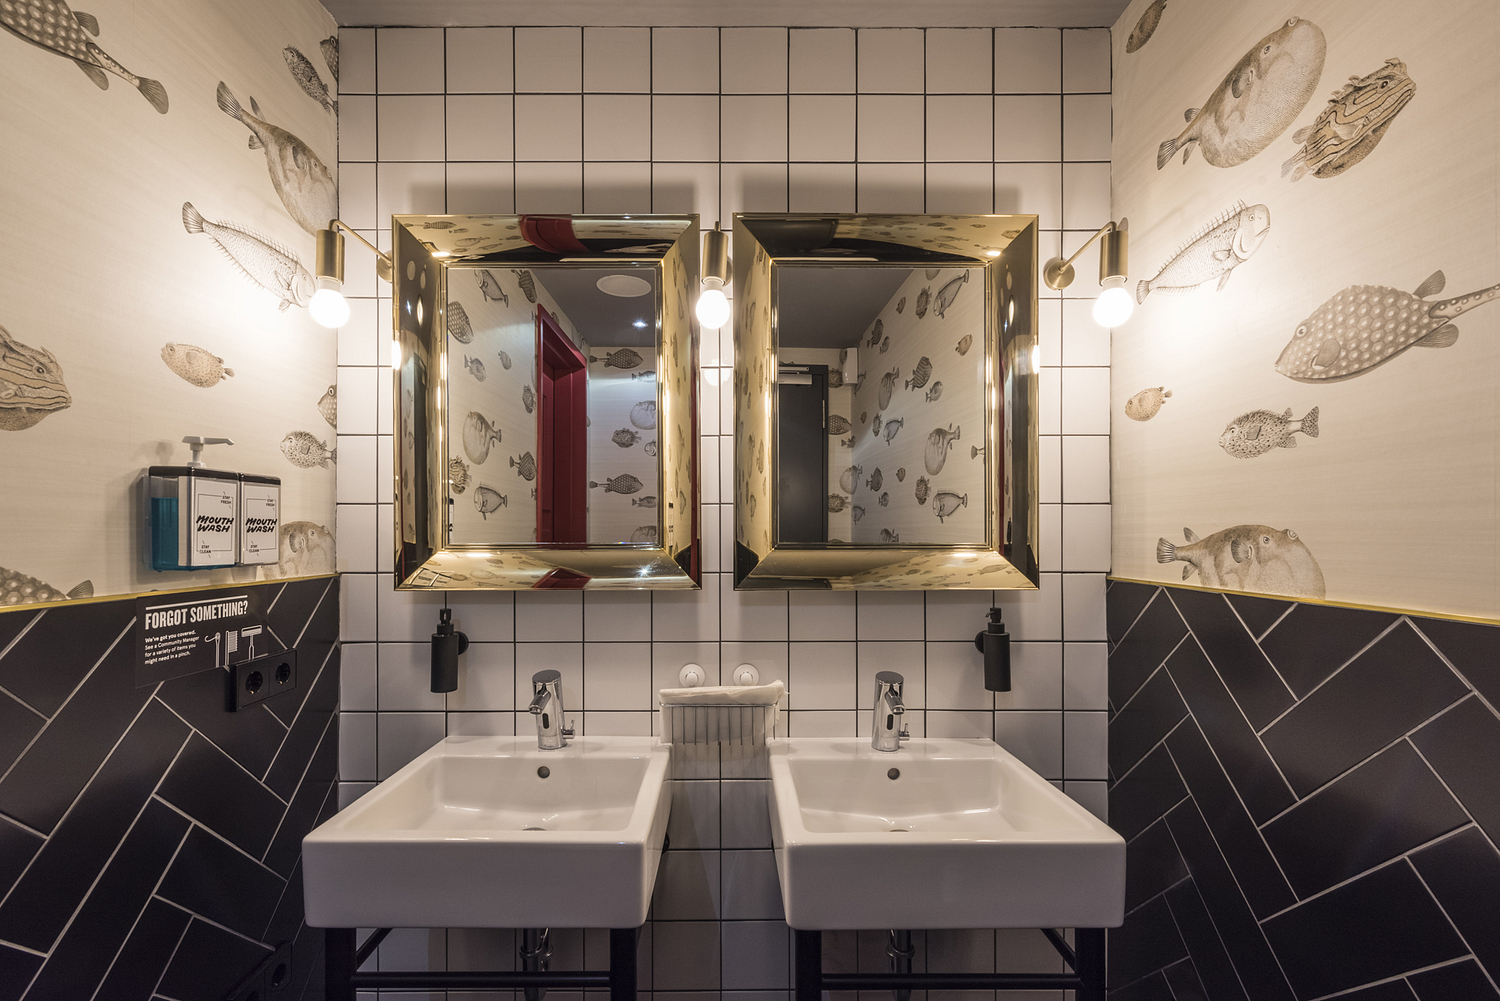 Washroom with fish wallpaper, workspace, Berlin